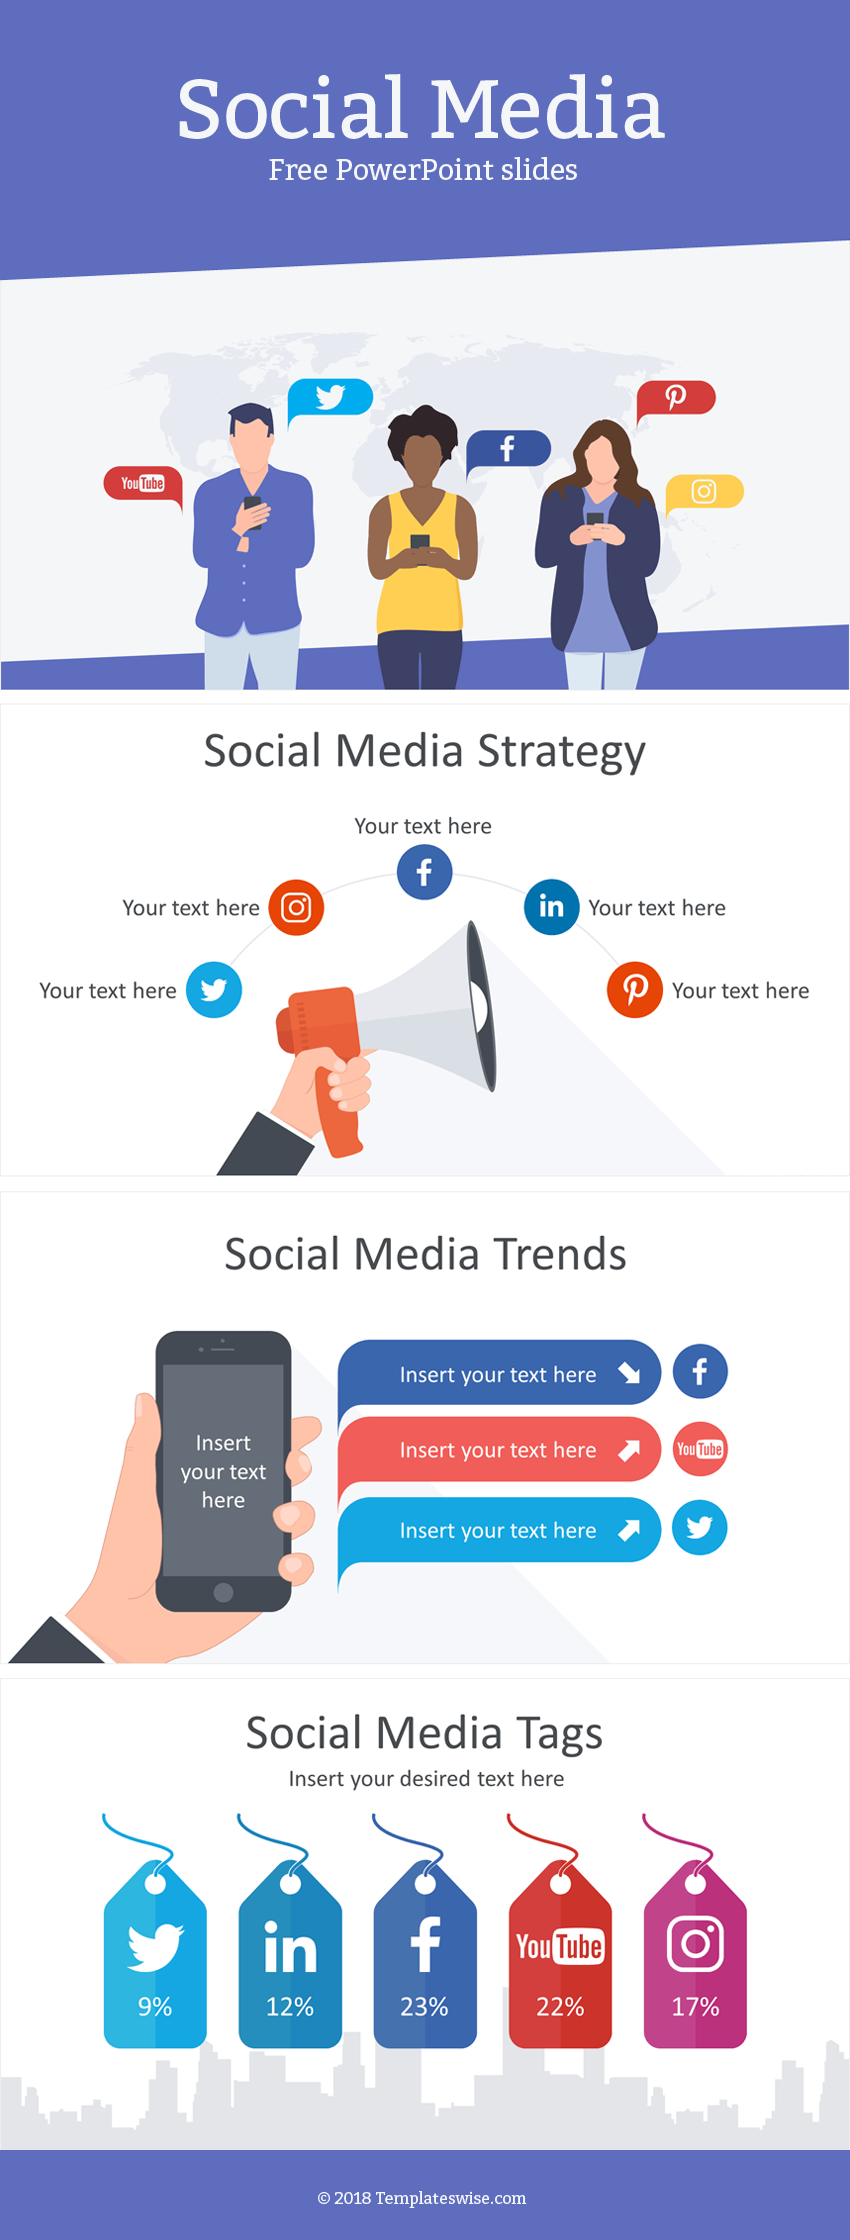 Support Your Message With Our Free Social Media Powerpoint Templates